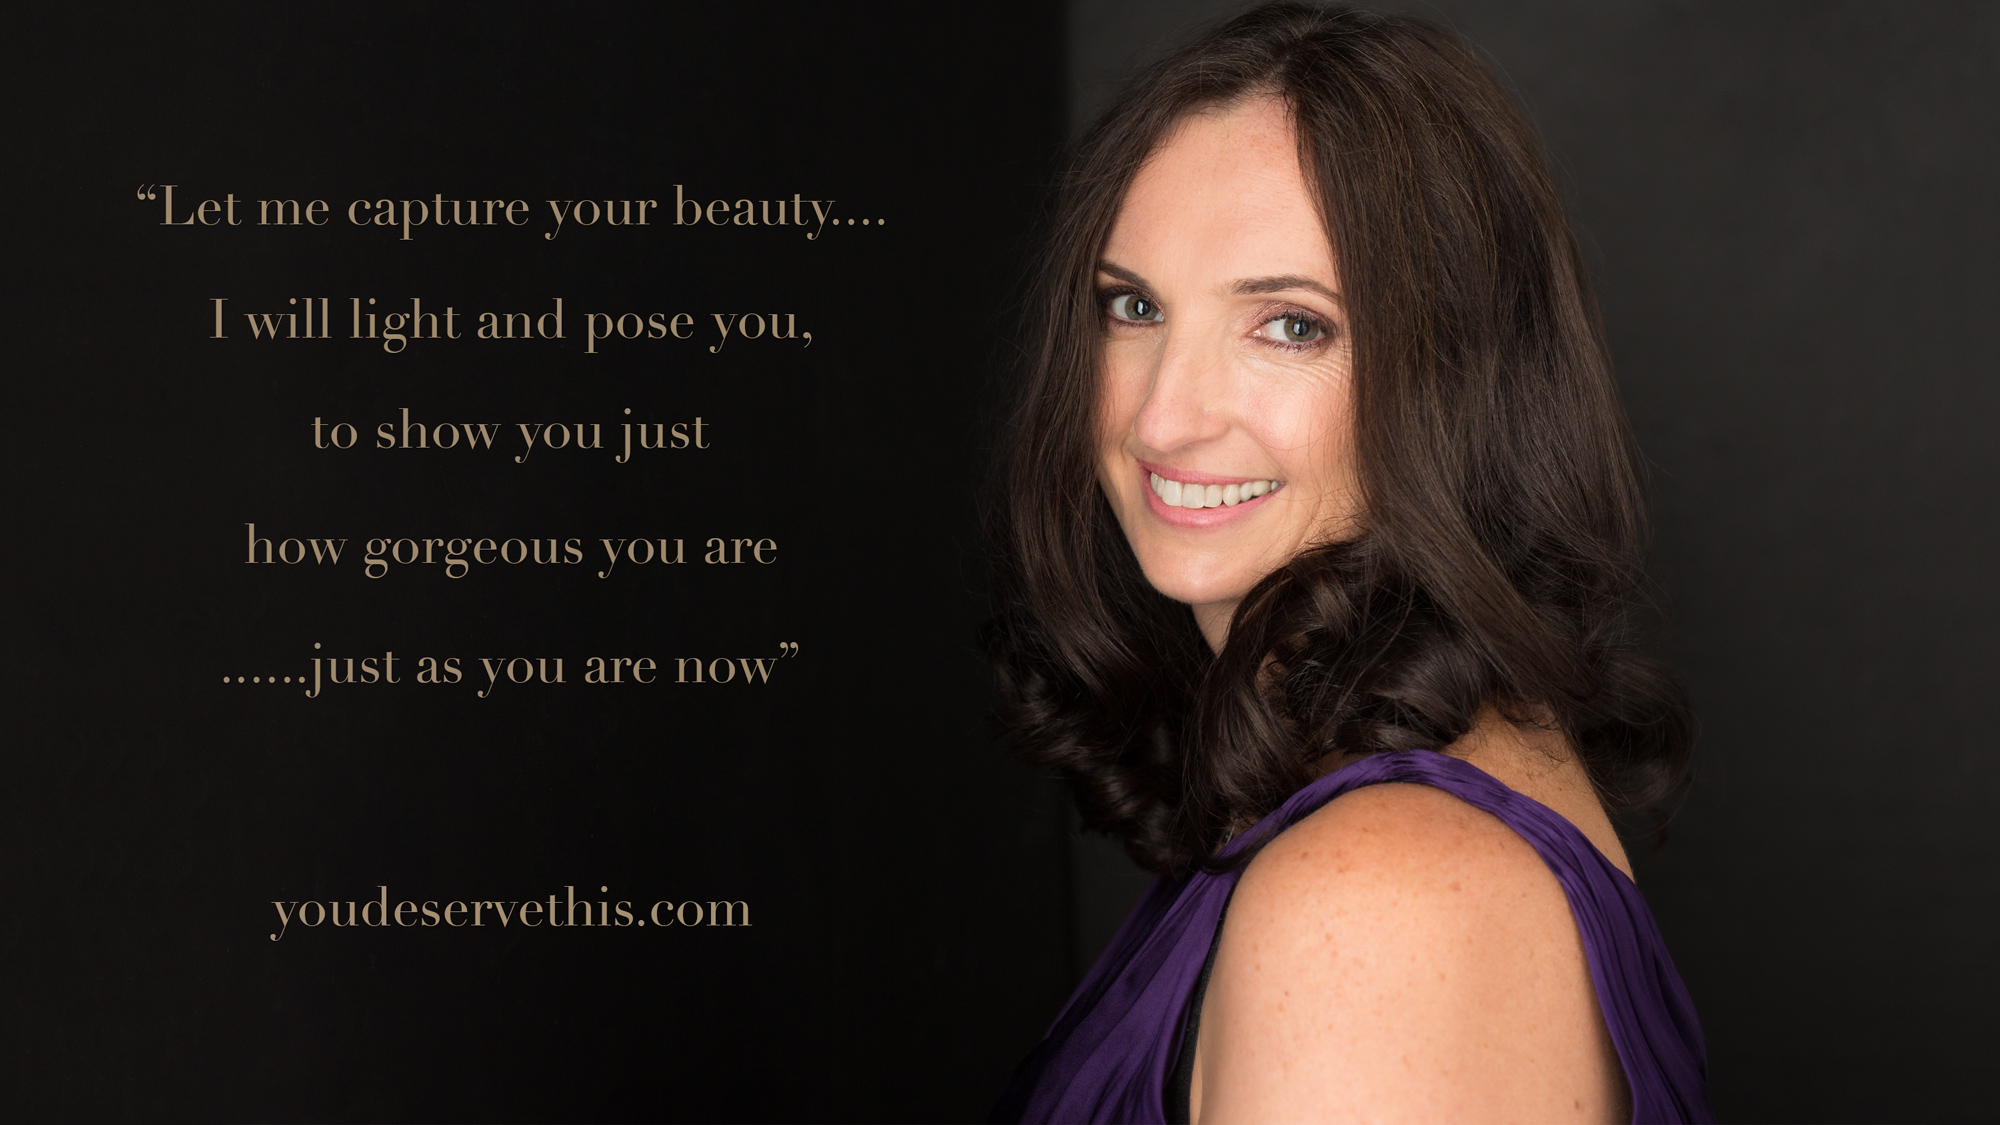 Our makeover and photoshoot studio in Tadley, Hampshire - providing uplifting and fun experiences for women and those they love, throughout the UK.  www.youdeservethis.com